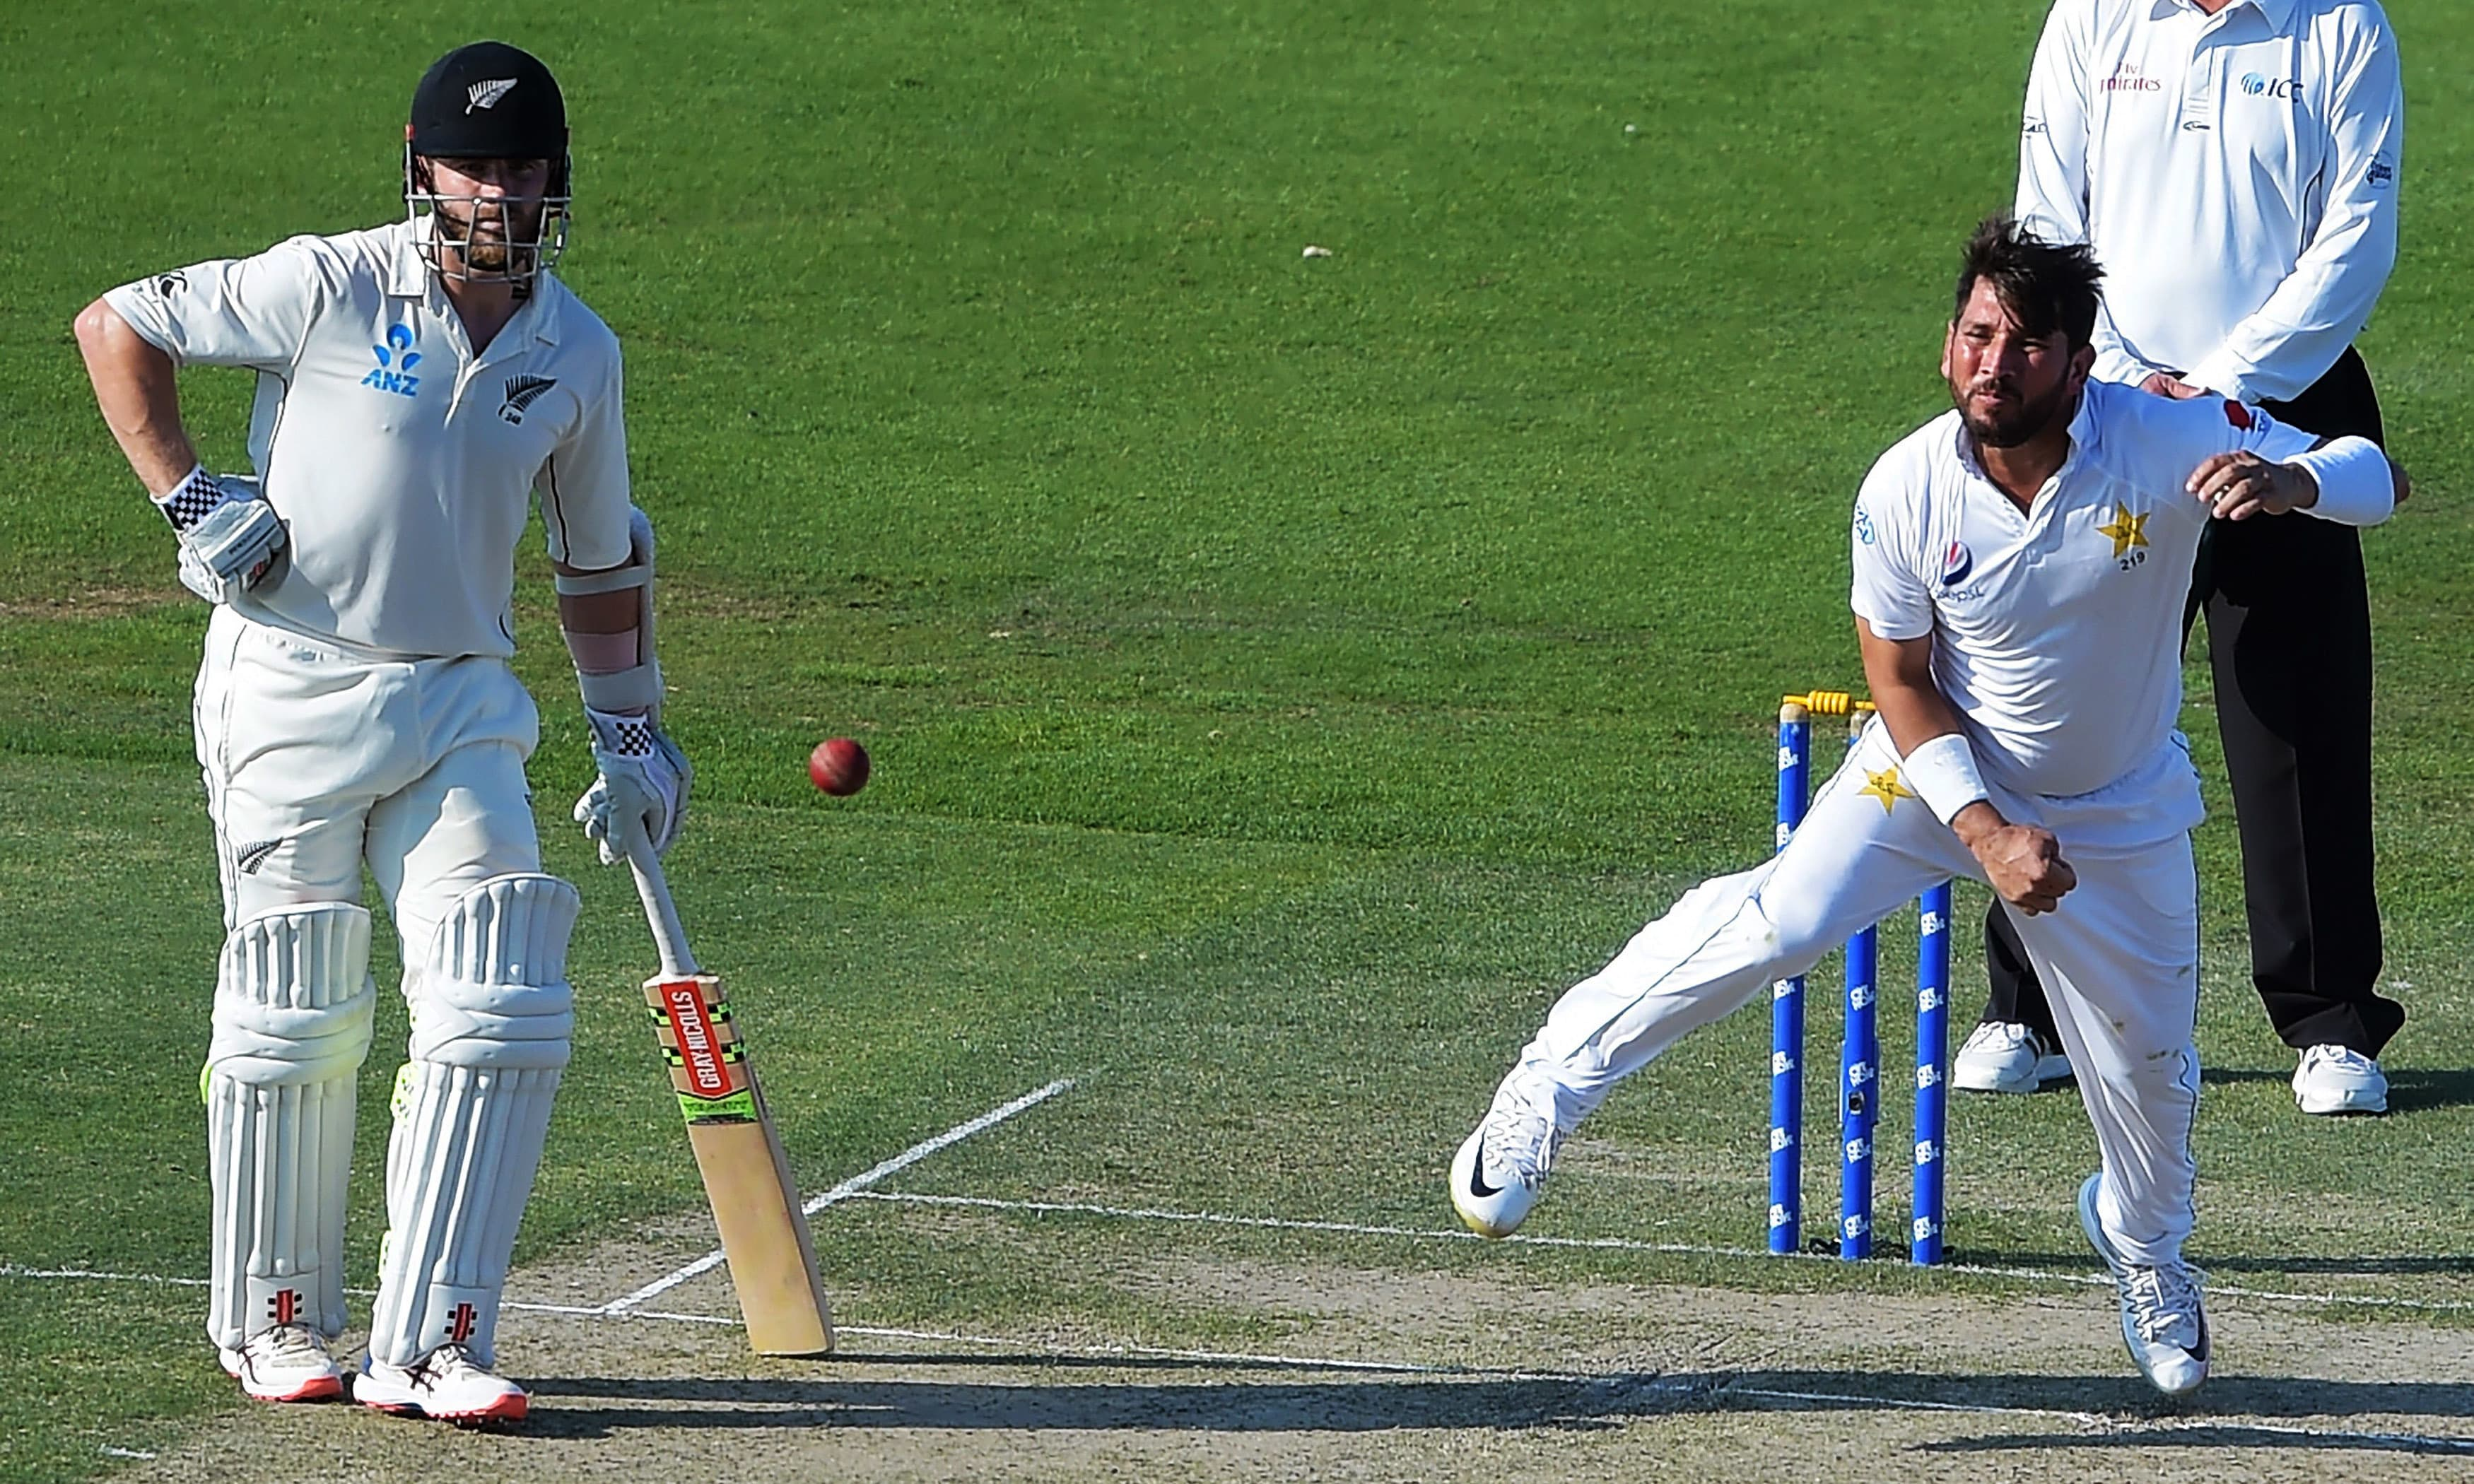 Yasir Shah delivers the ball as Kane Williamson looks on during the first day of the third Test. —AFP